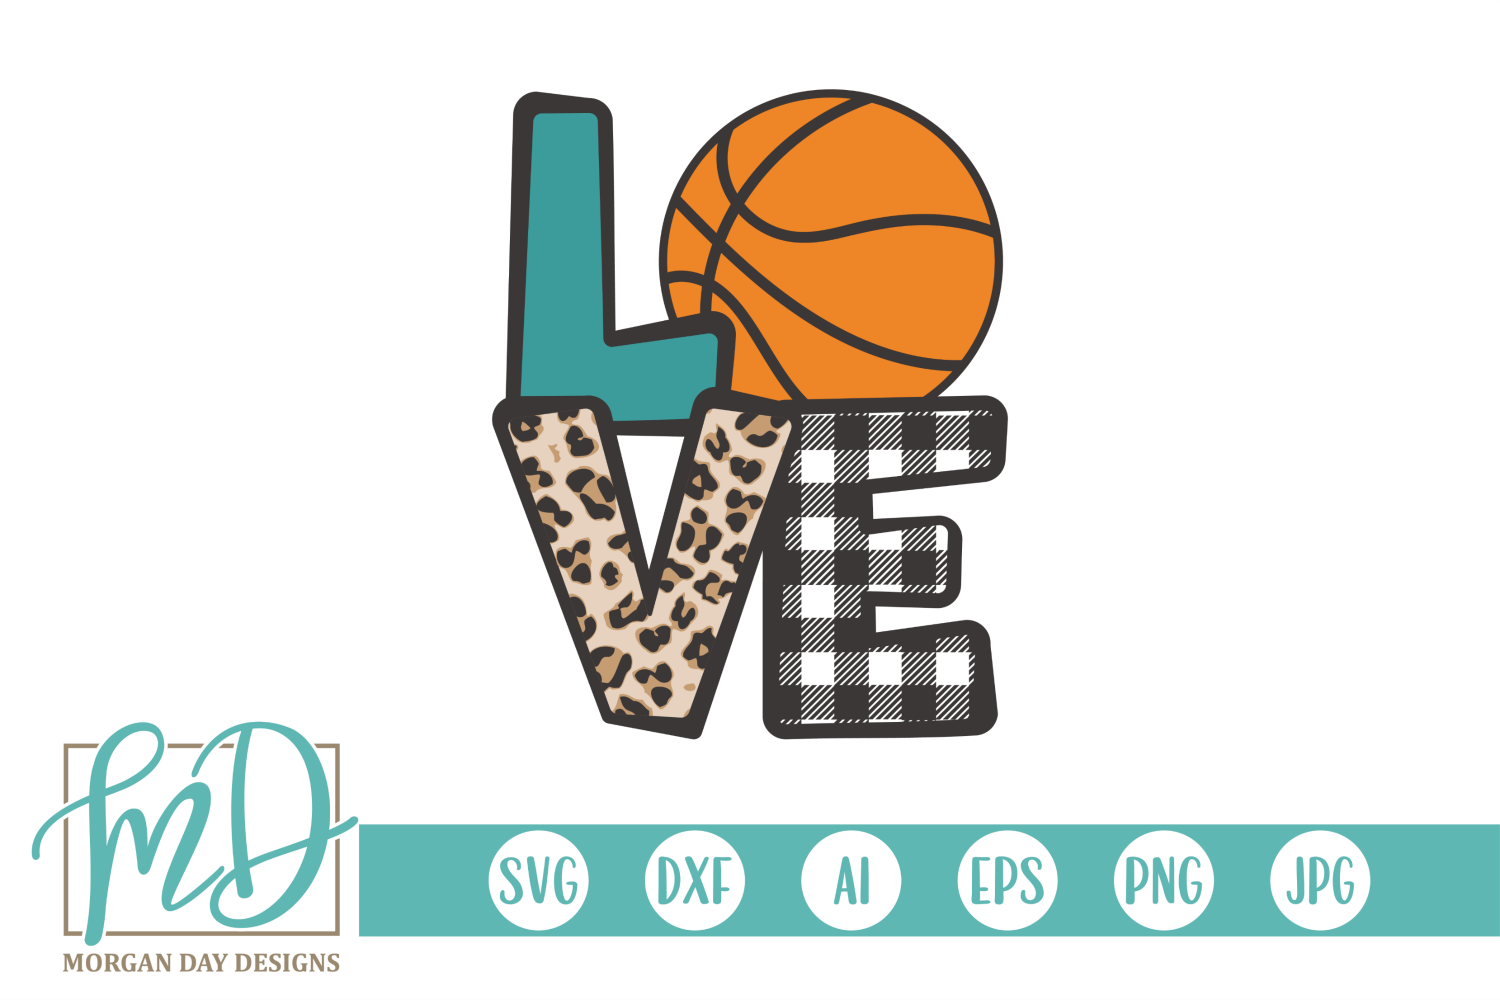 Download Free Basketball Love Graphic By Morgan Day Designs Creative Fabrica for Cricut Explore, Silhouette and other cutting machines.